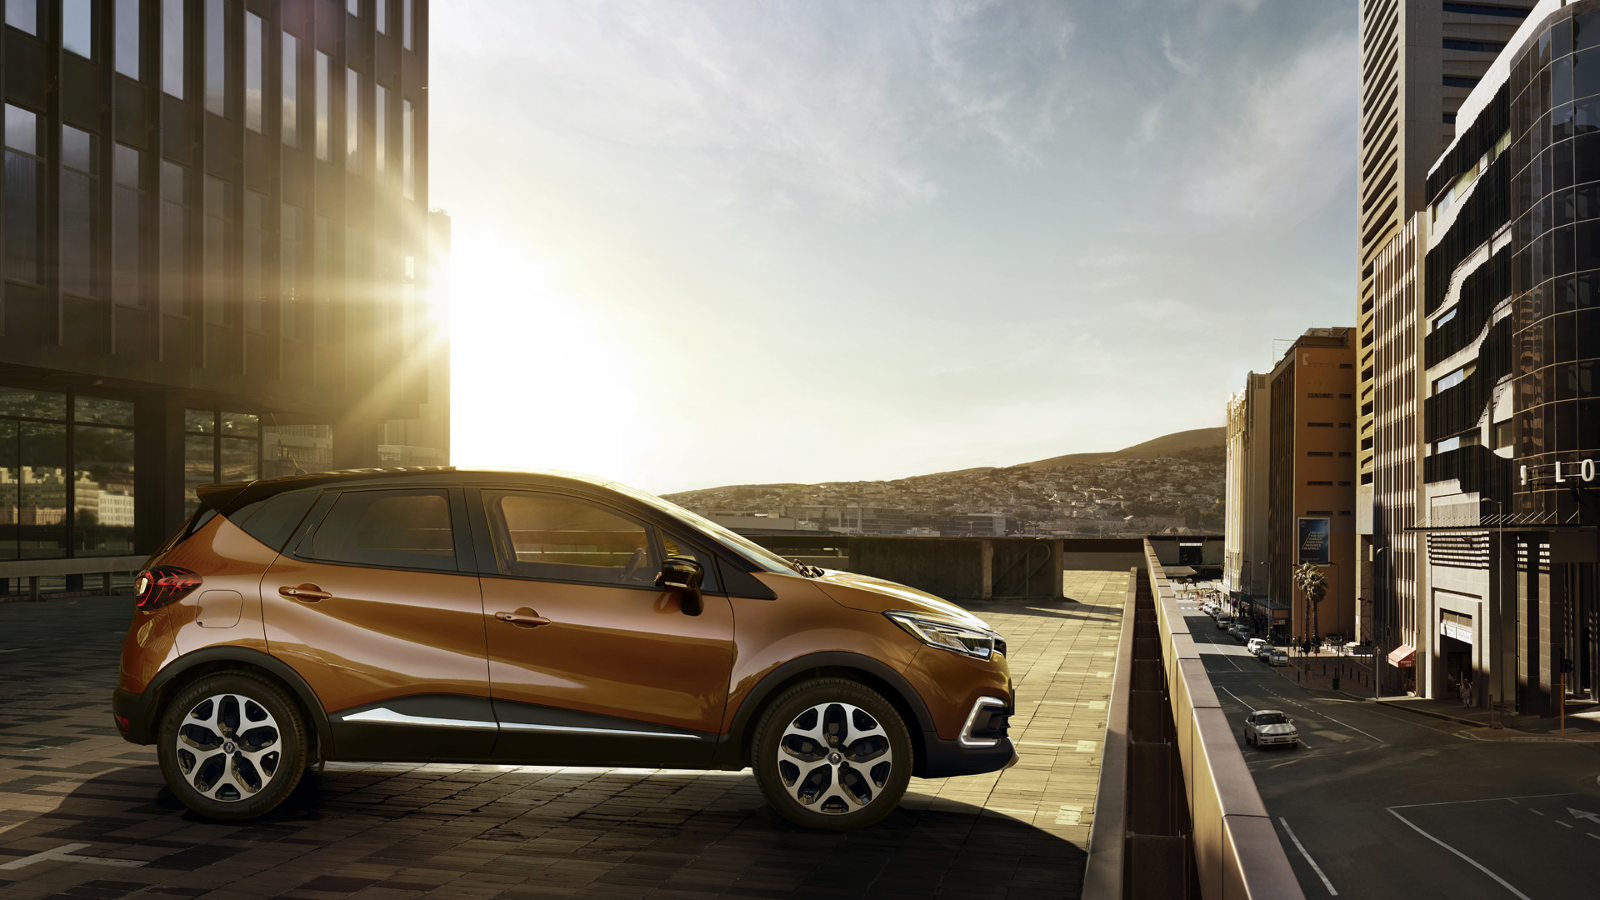 Lateral Renault Captur